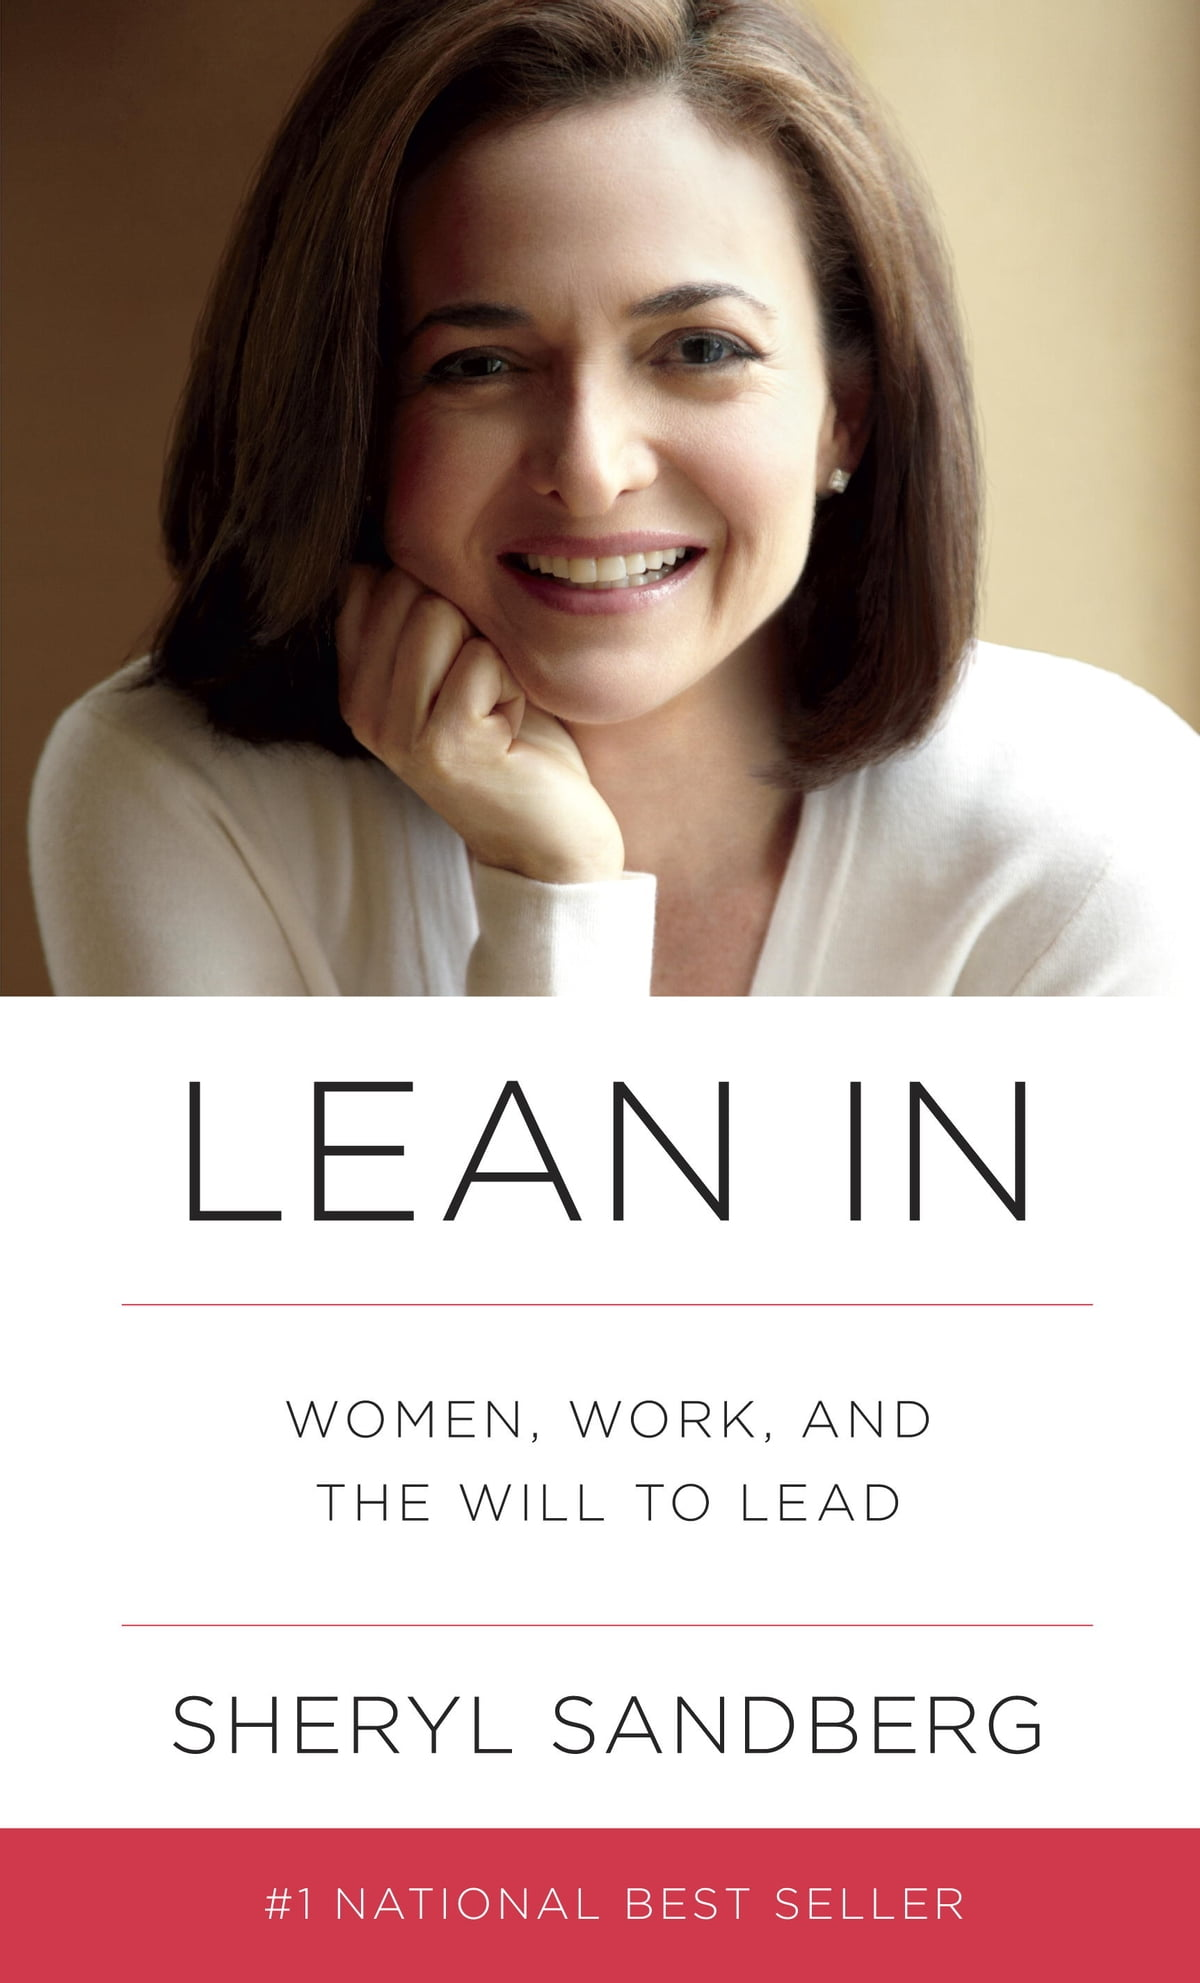 Lean In  Women, Work, And The Will To Lead Ebook By Sheryl Sandberg